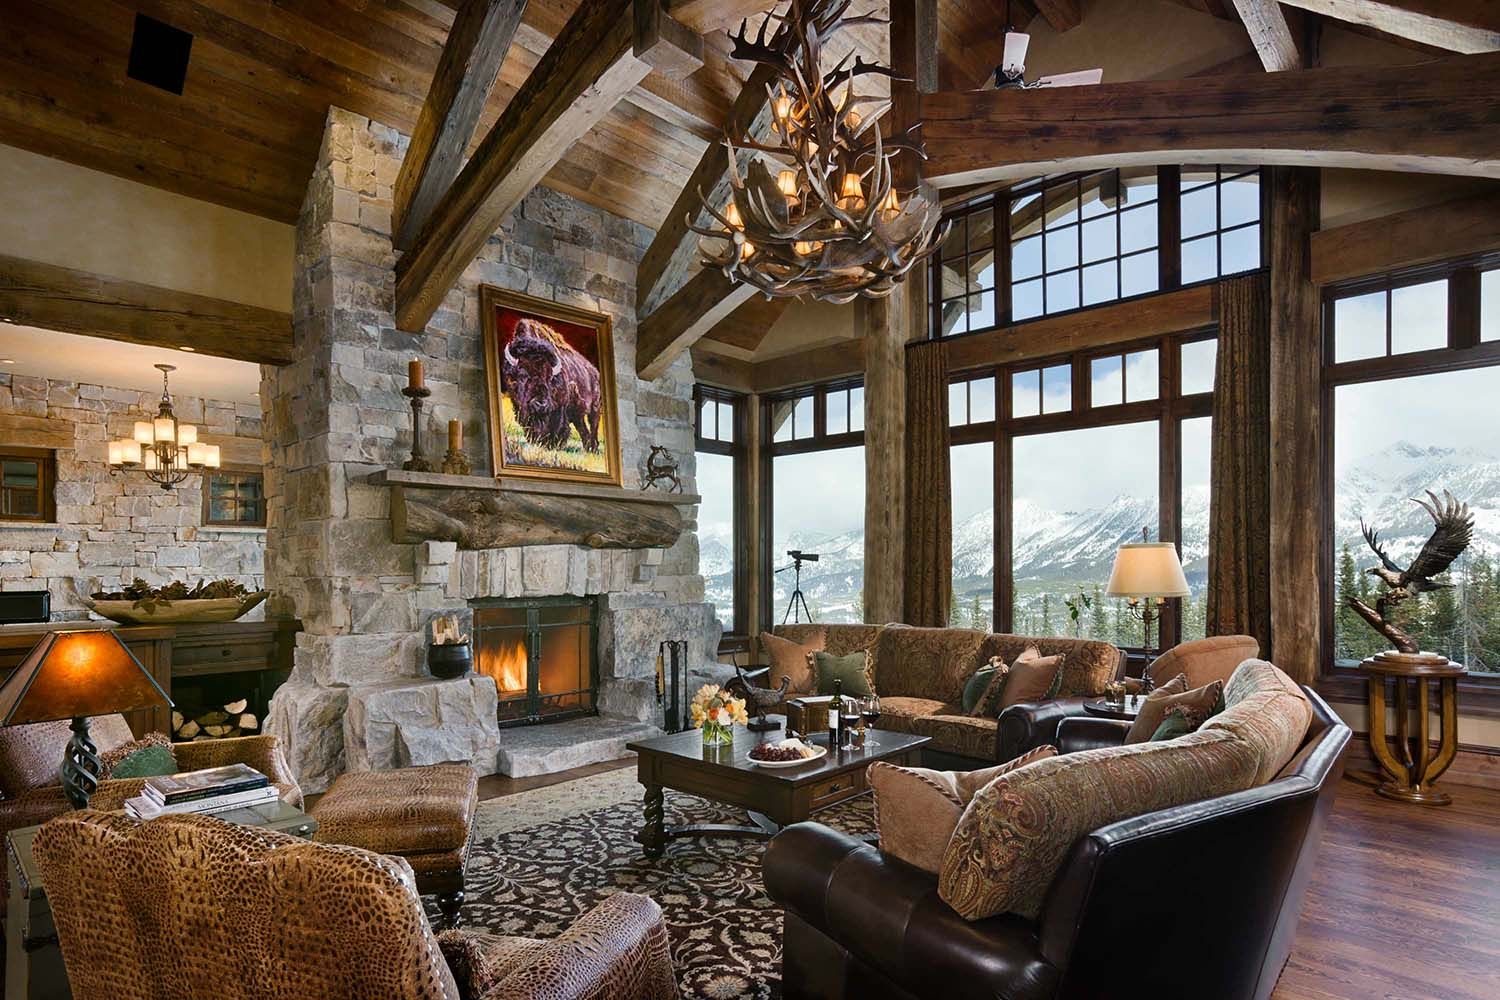 a rustic-chic home surrounded by the rocky mountains, Wohnzimmer dekoo